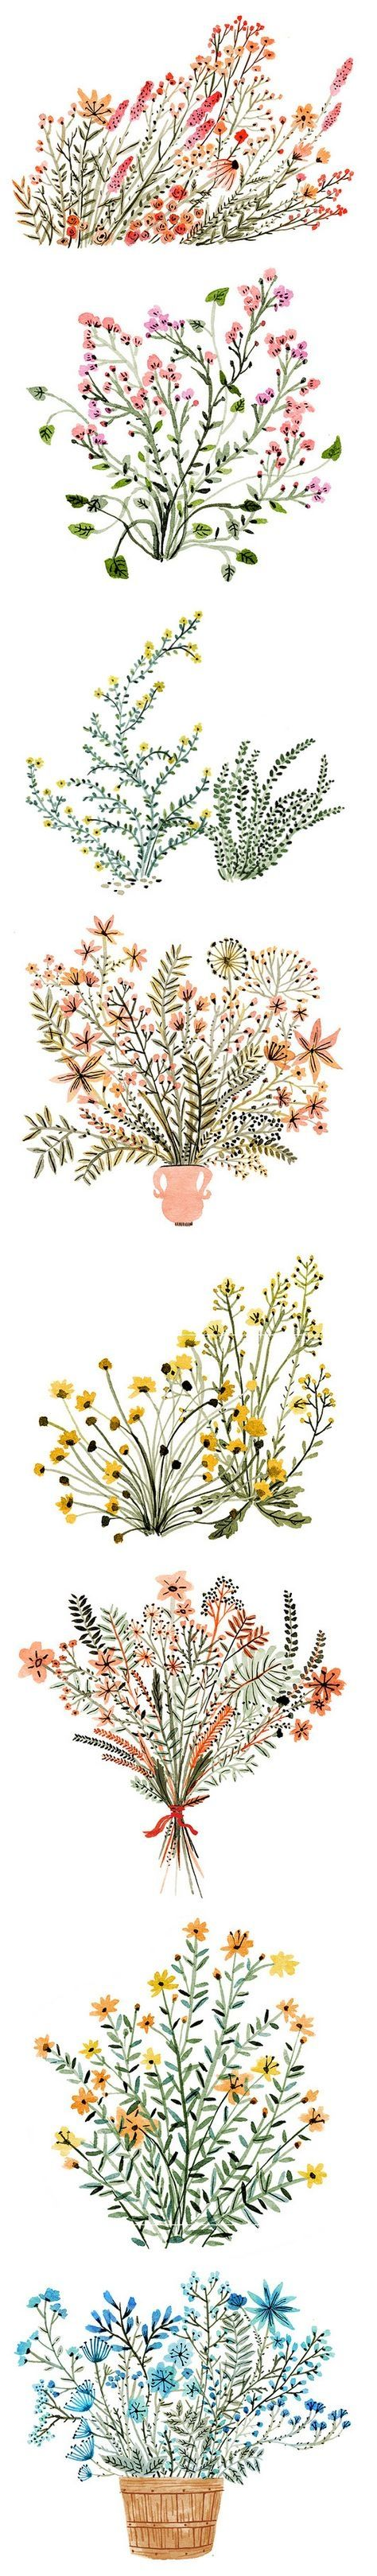 Dainty watercolor flowers, by Vikki Chu//